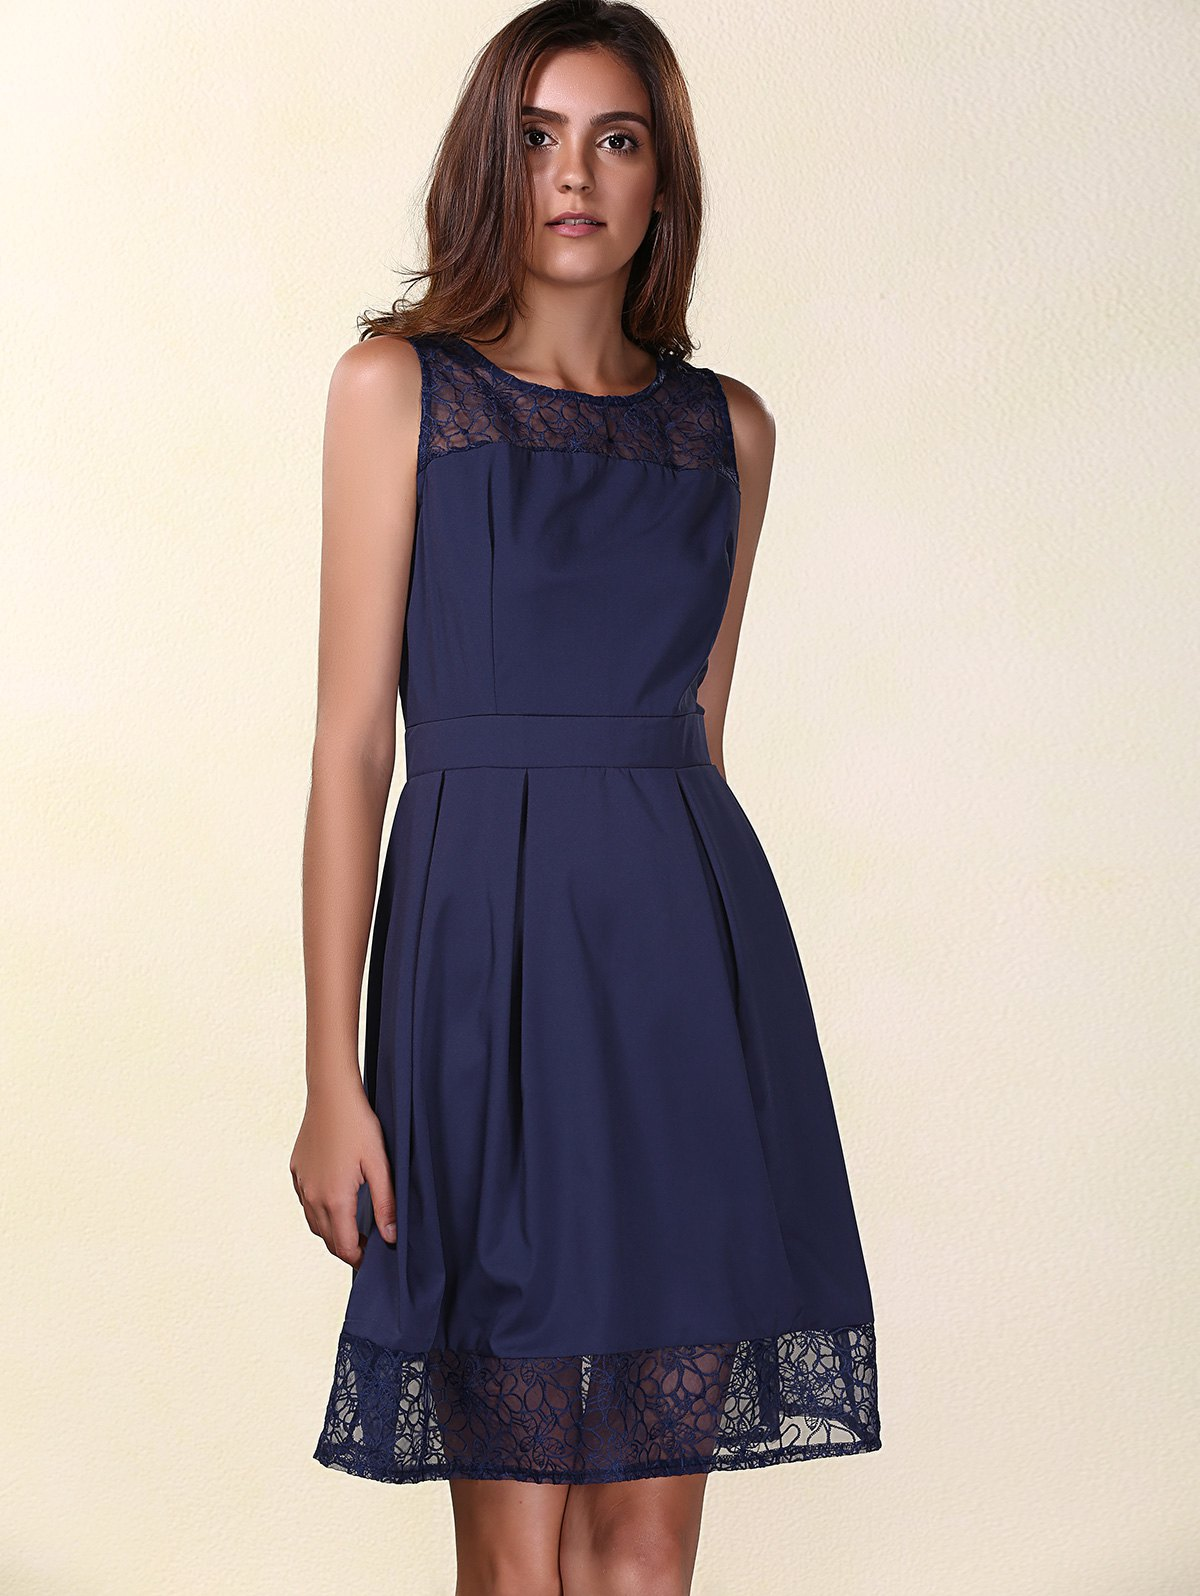 Trendy Sleeveless Round Neck Solid Color Lace Spliced Women's Dress - PURPLISH BLUE S